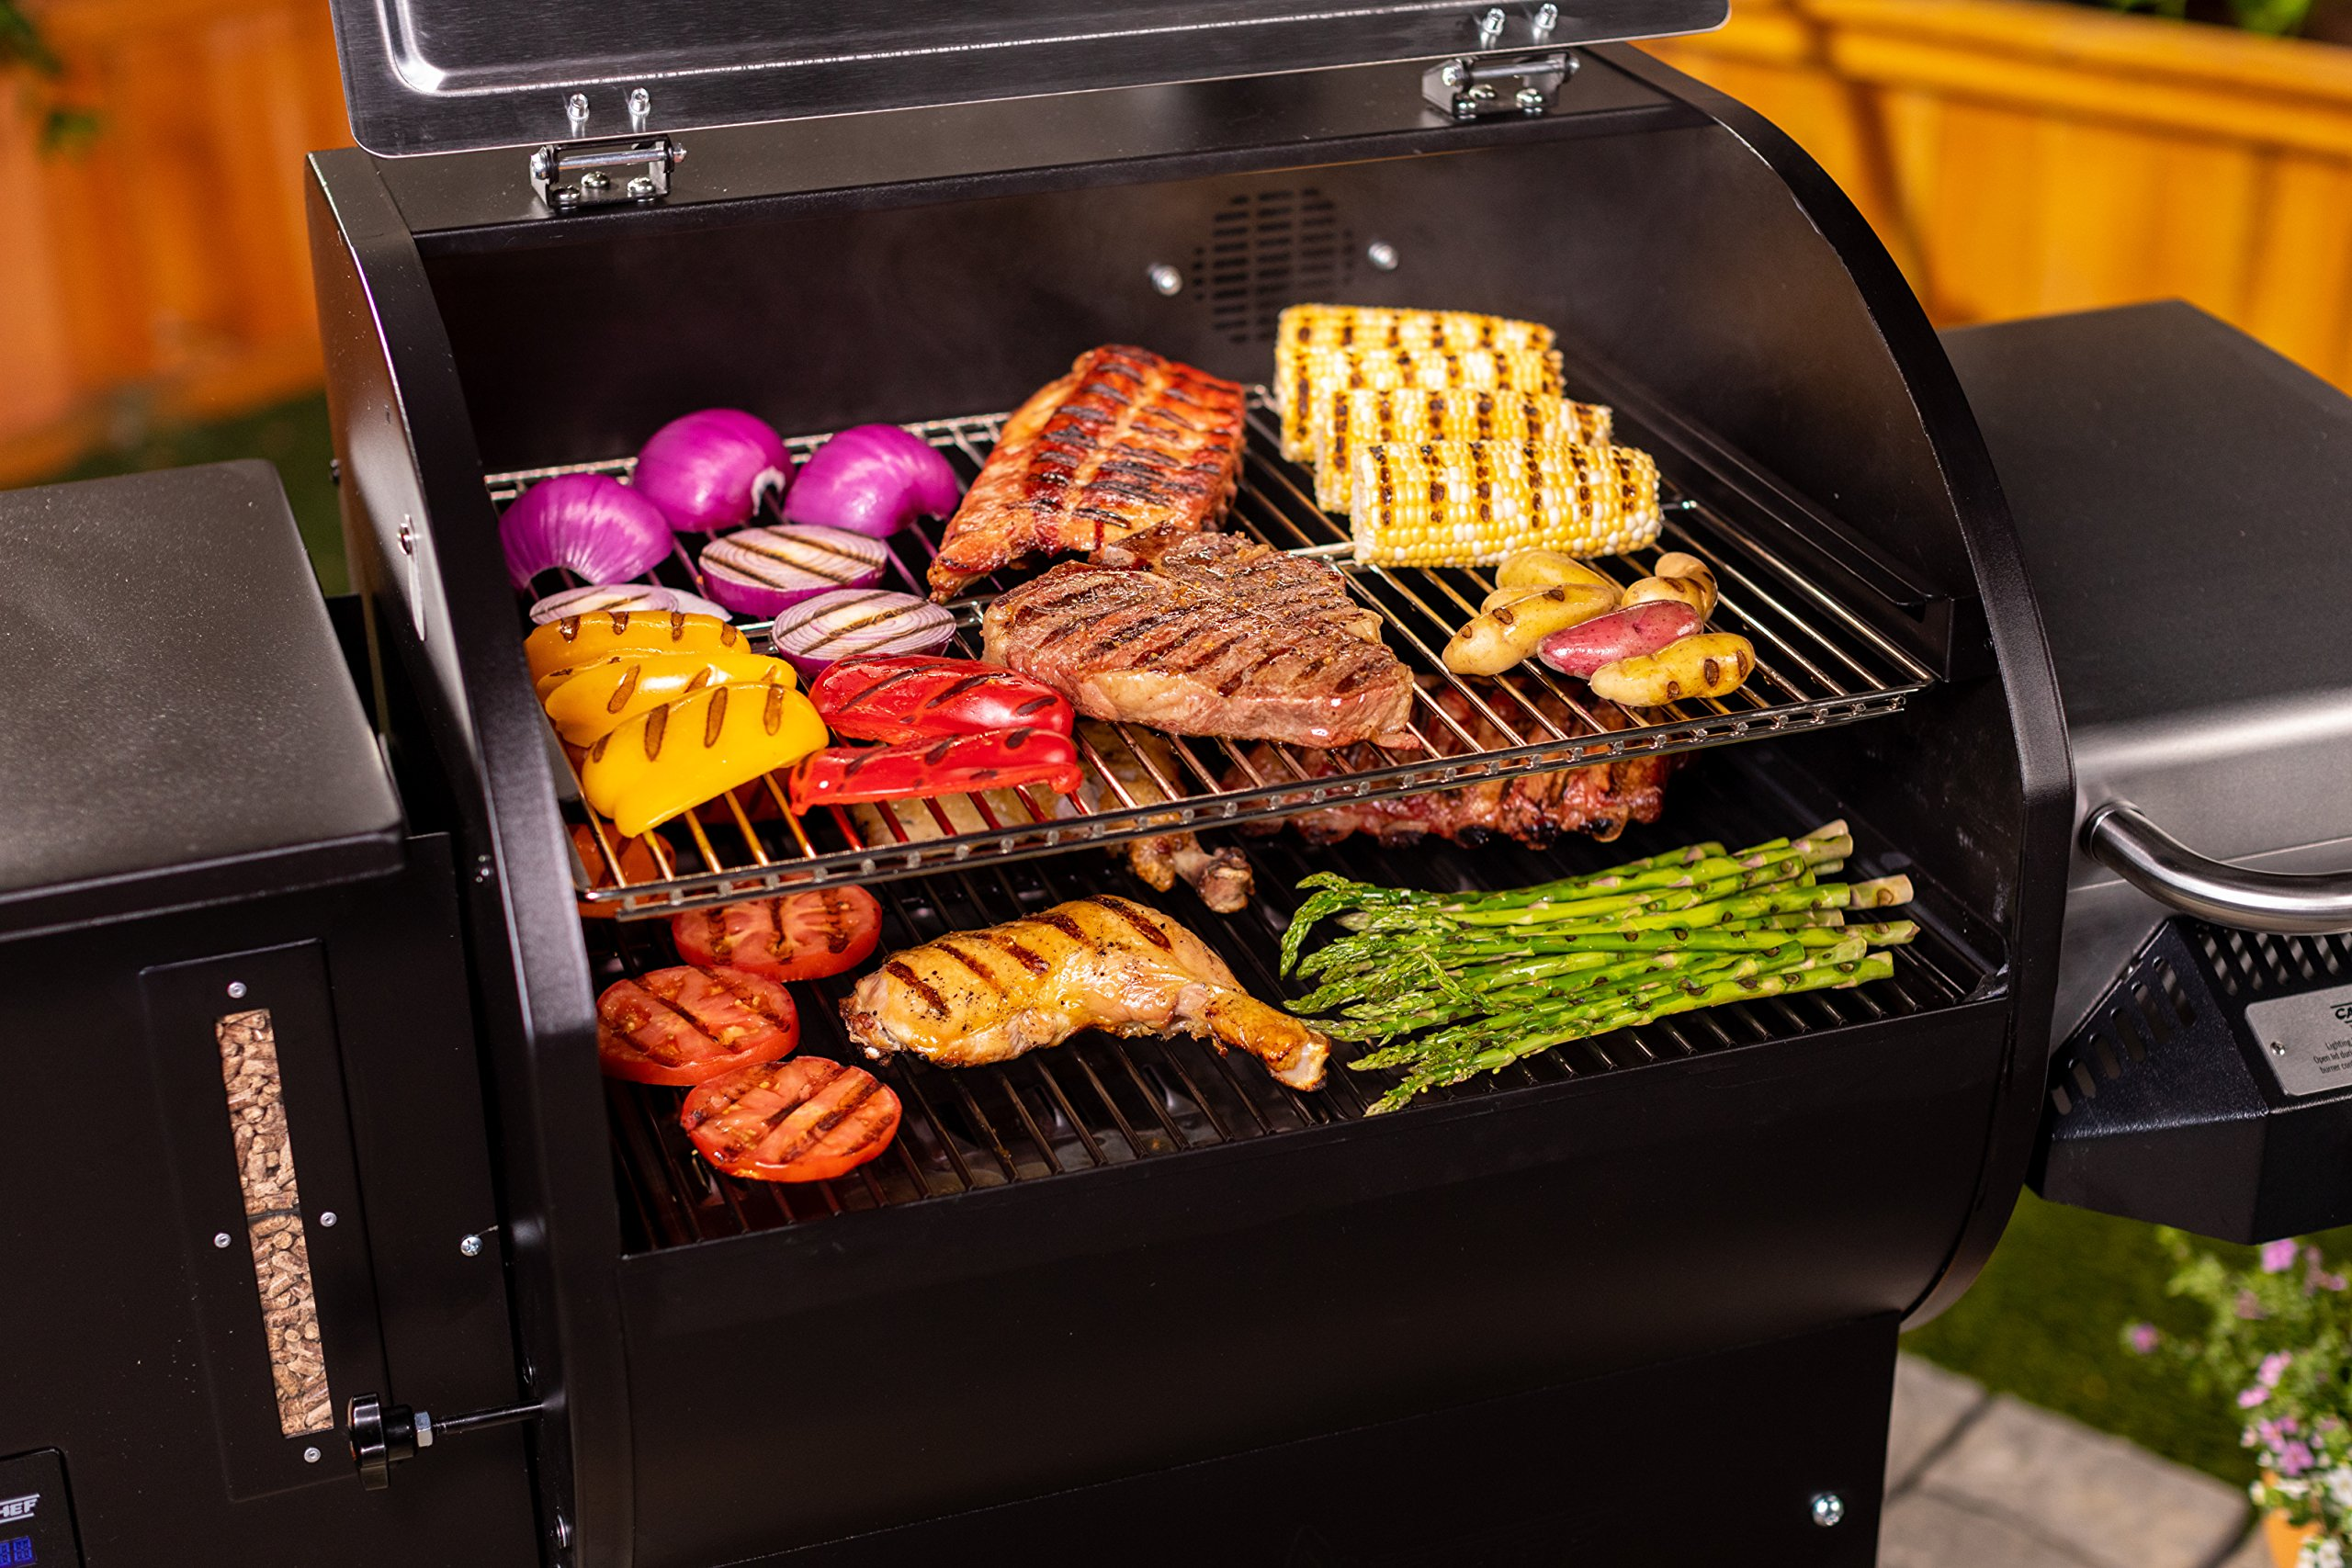 Camp Chef Woodwind Pellet Grill with Sear Box - Smart Smoke Technology - Ash Cleanout System (Woodwind SG) by Camp Chef (Image #5)